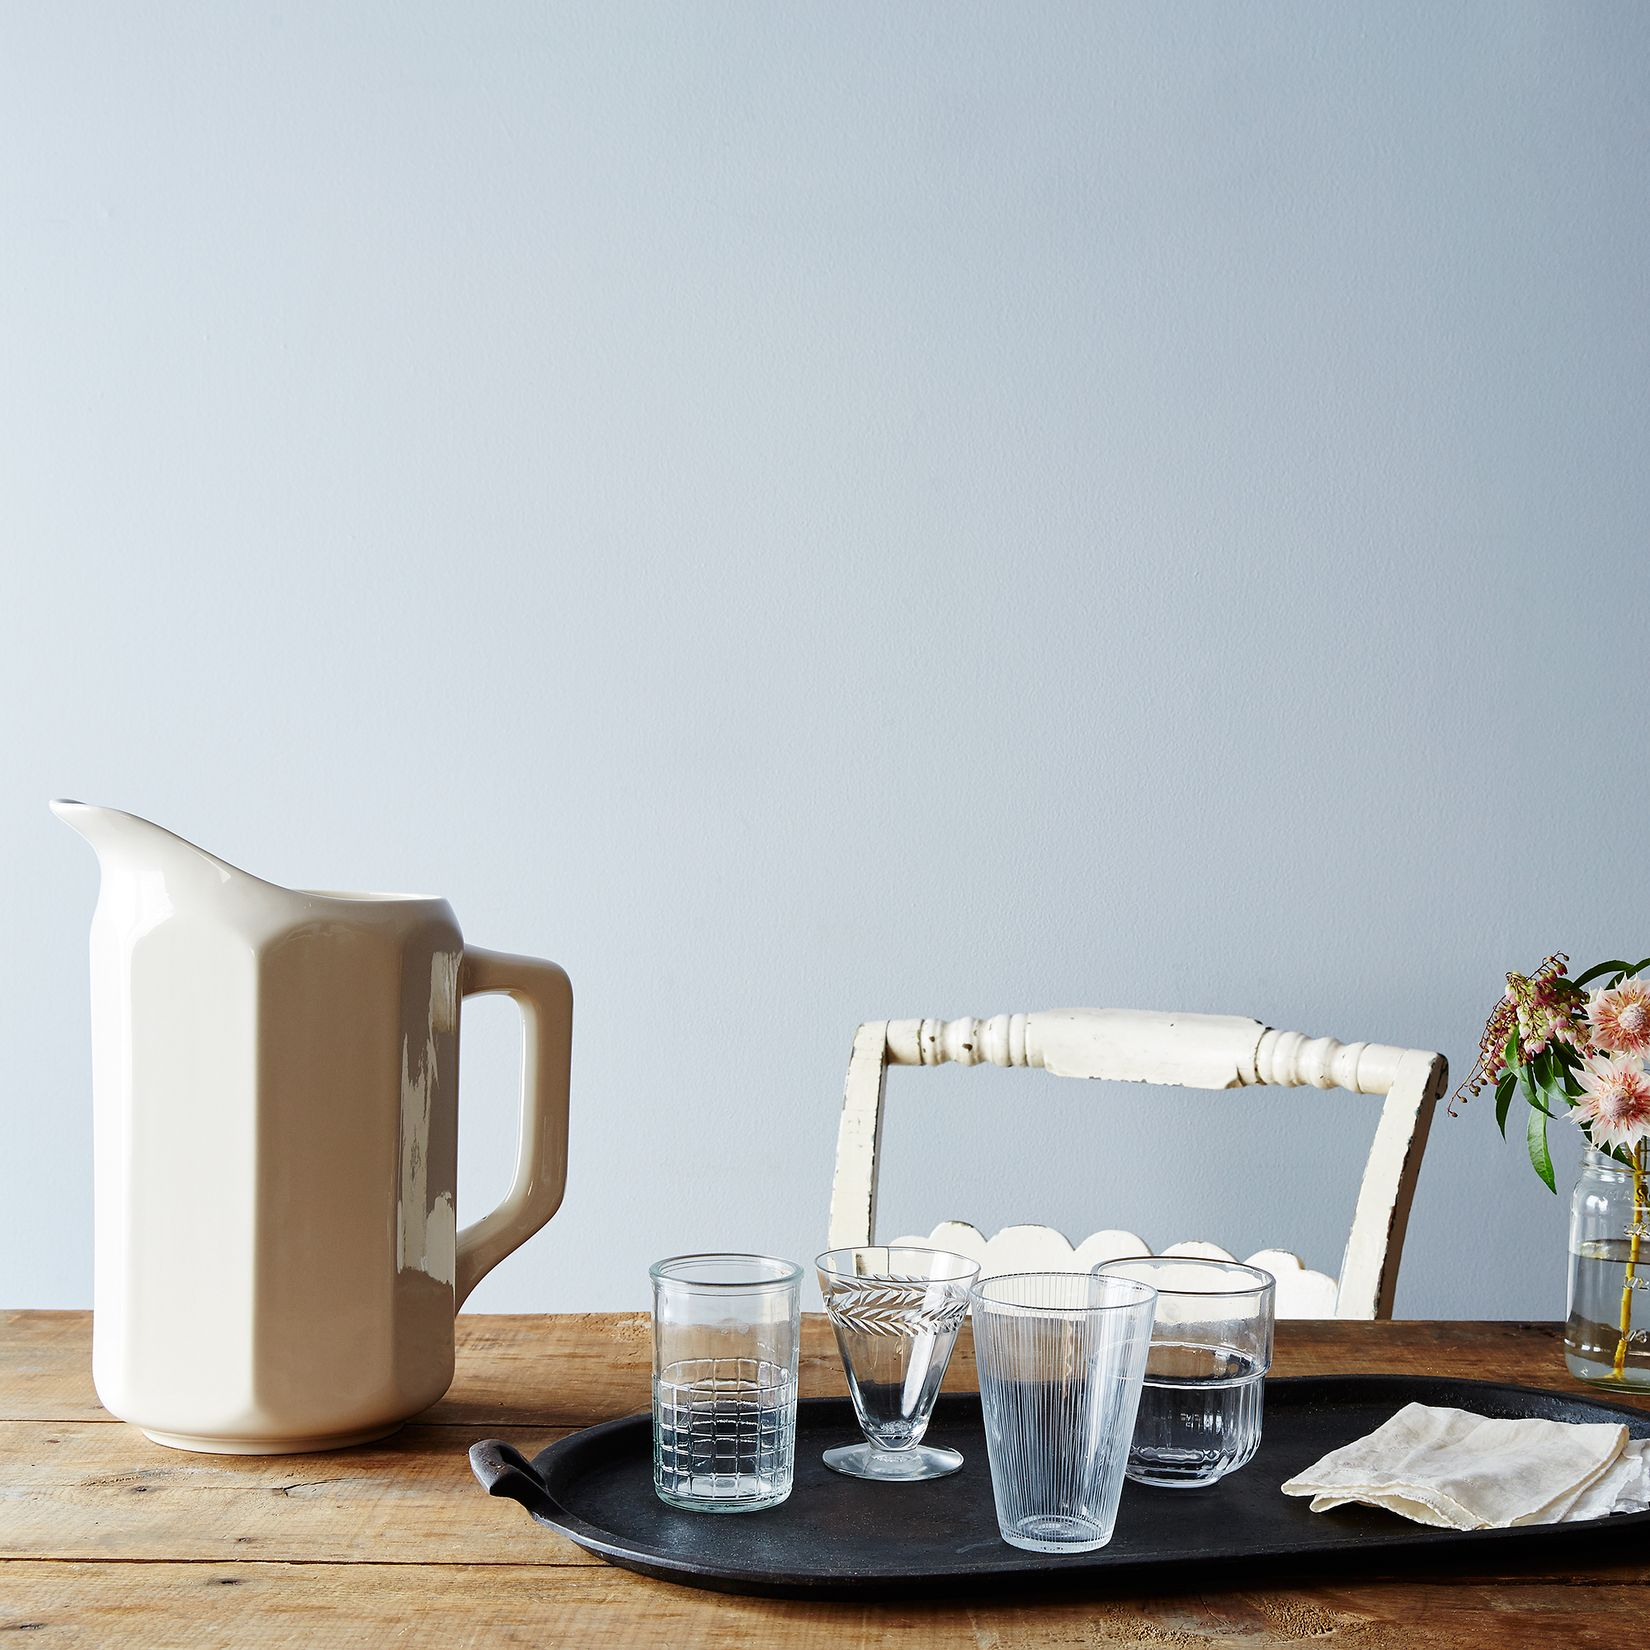 Simple white pitcher